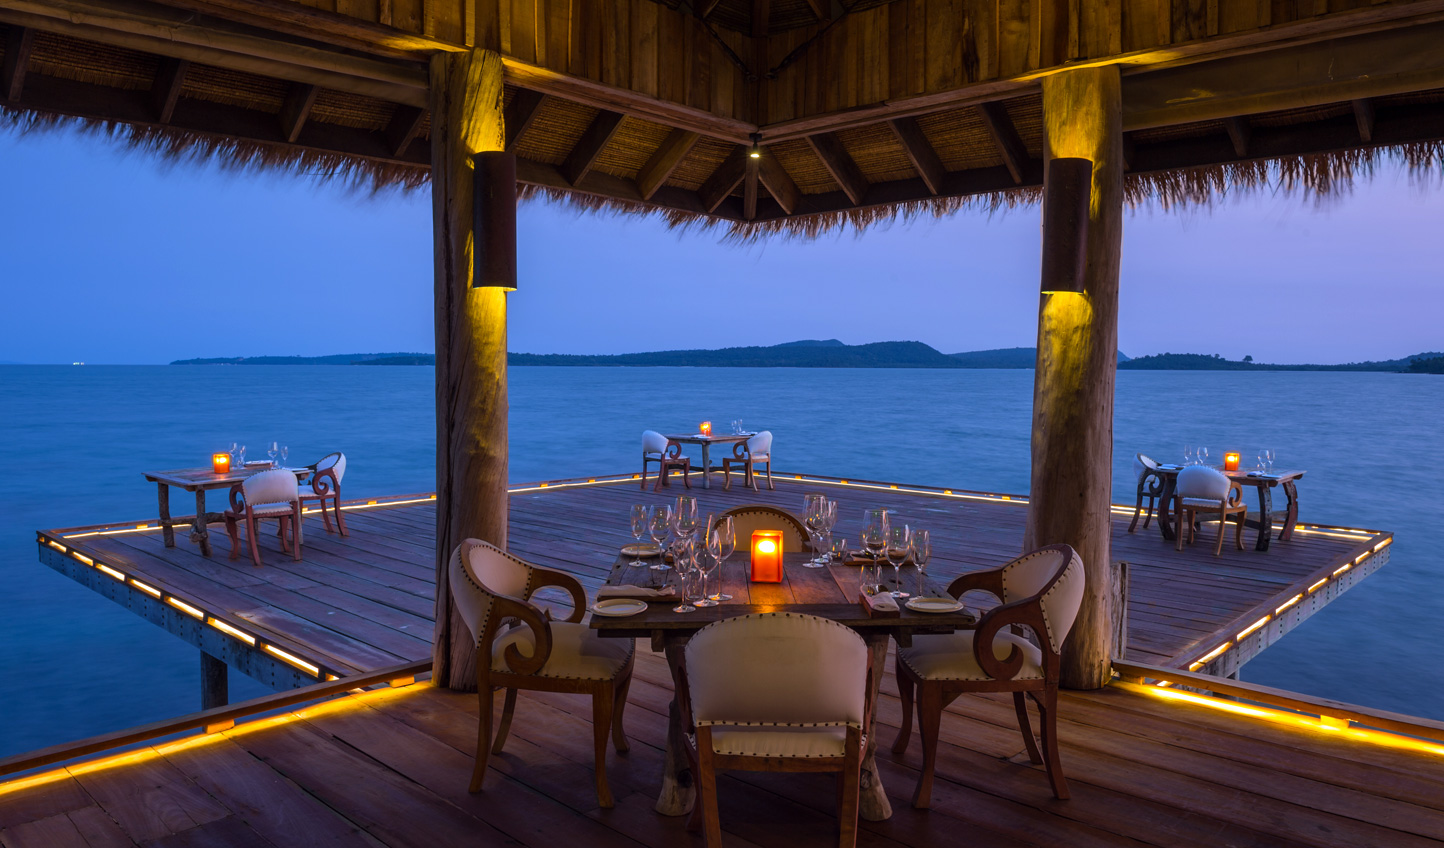 Dine by candlelight amid the warm ocean breeze